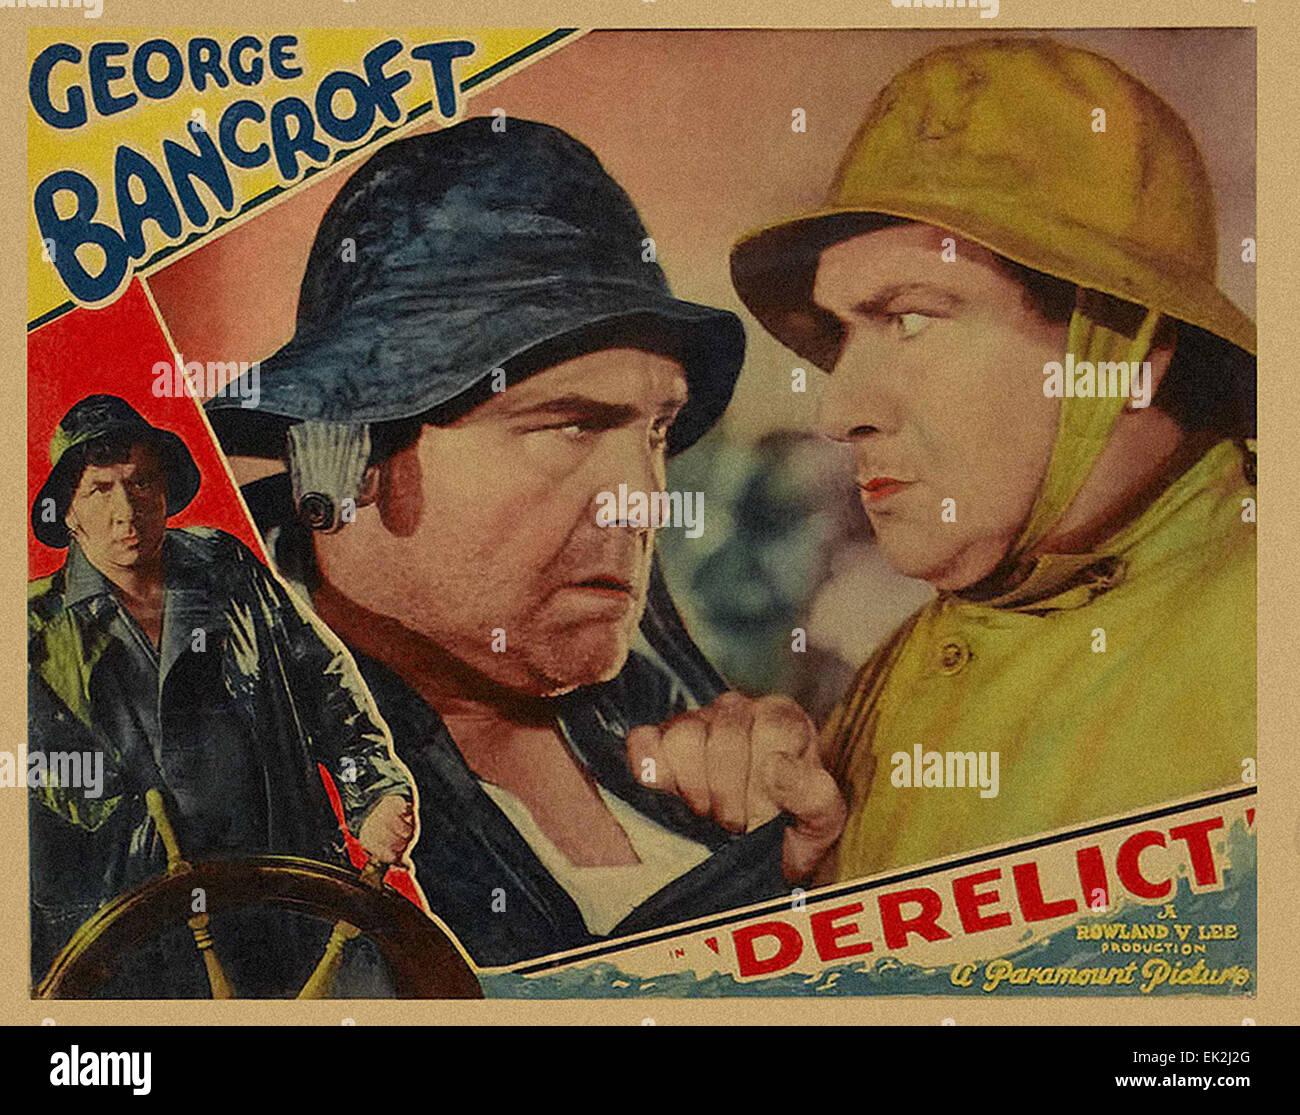 Derelict - 1930 - Movie Poster - Stock Image